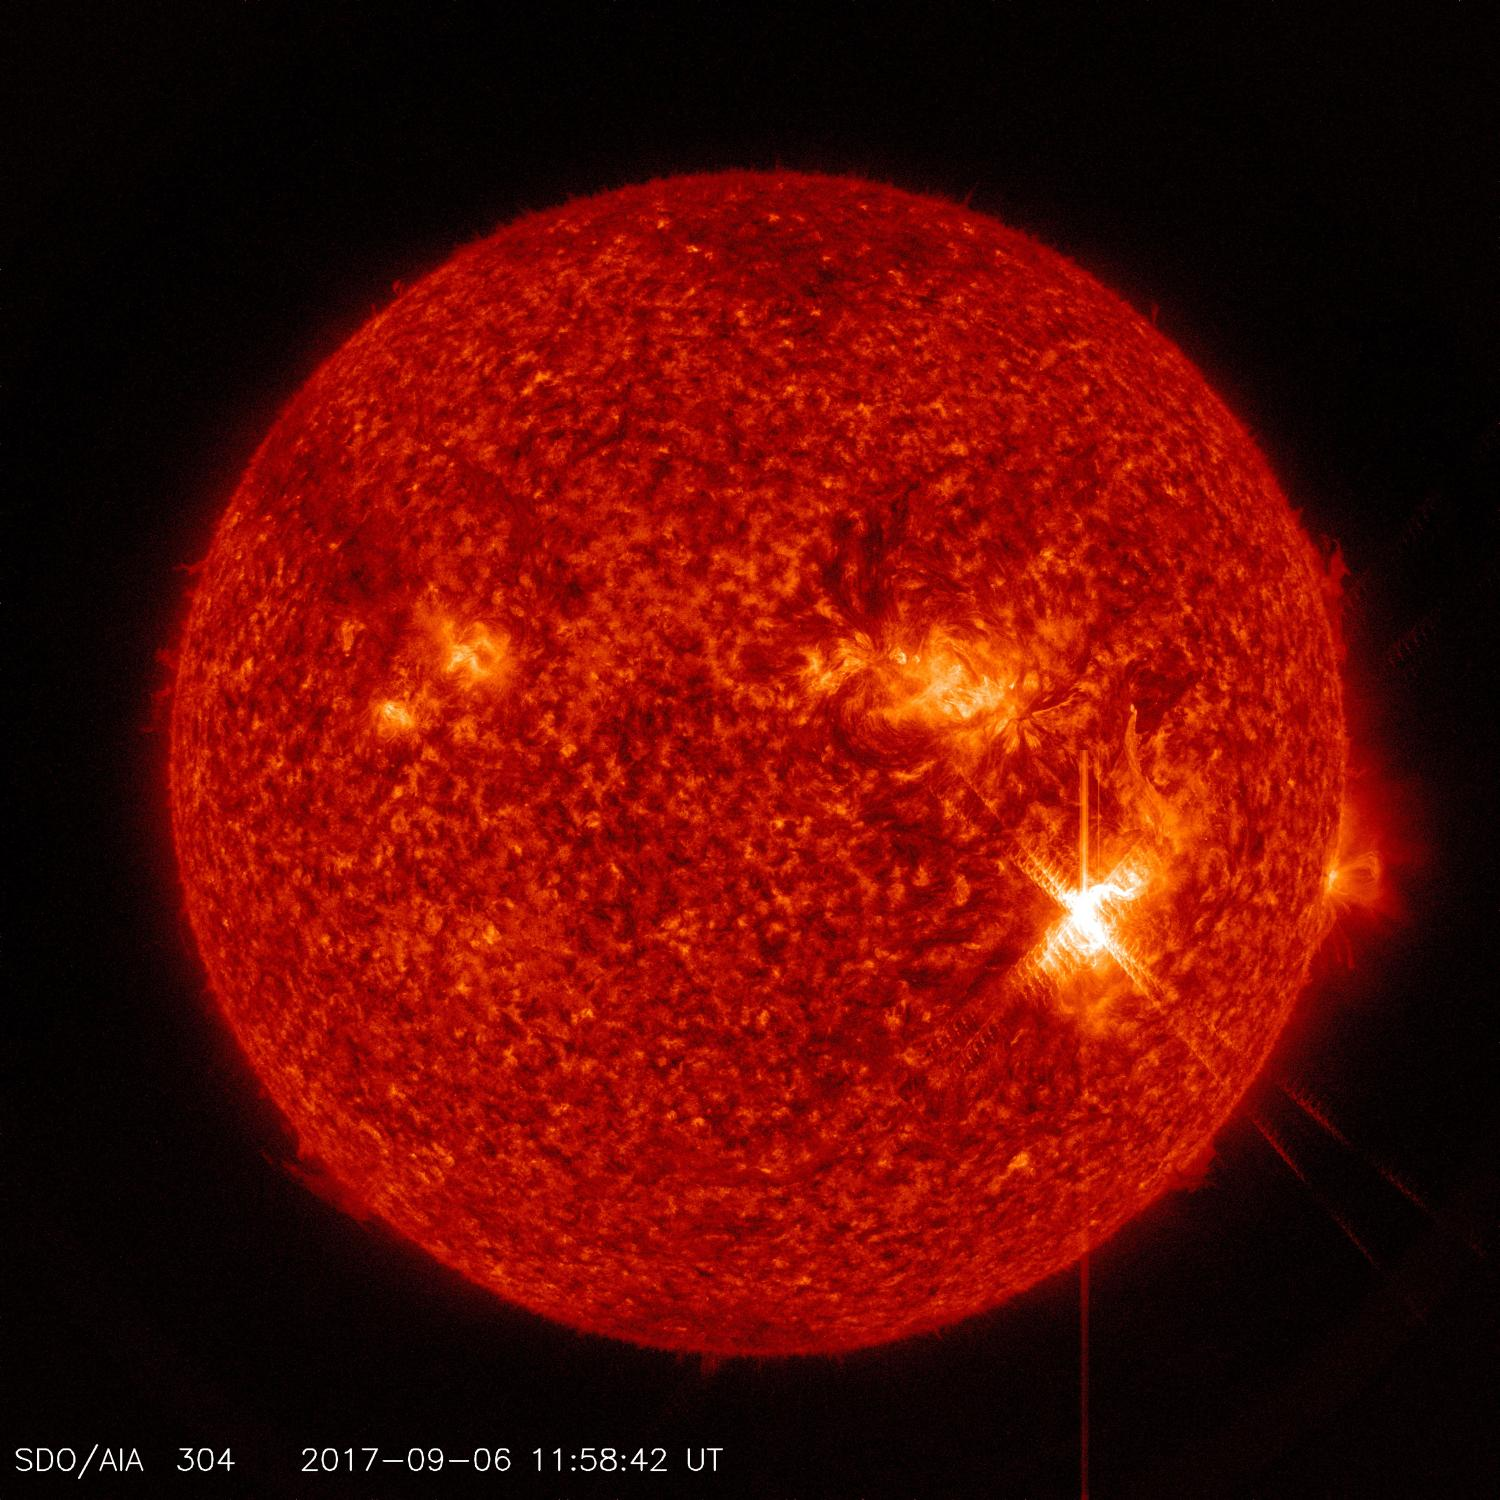 NASA has detected two solar flares of high intensity